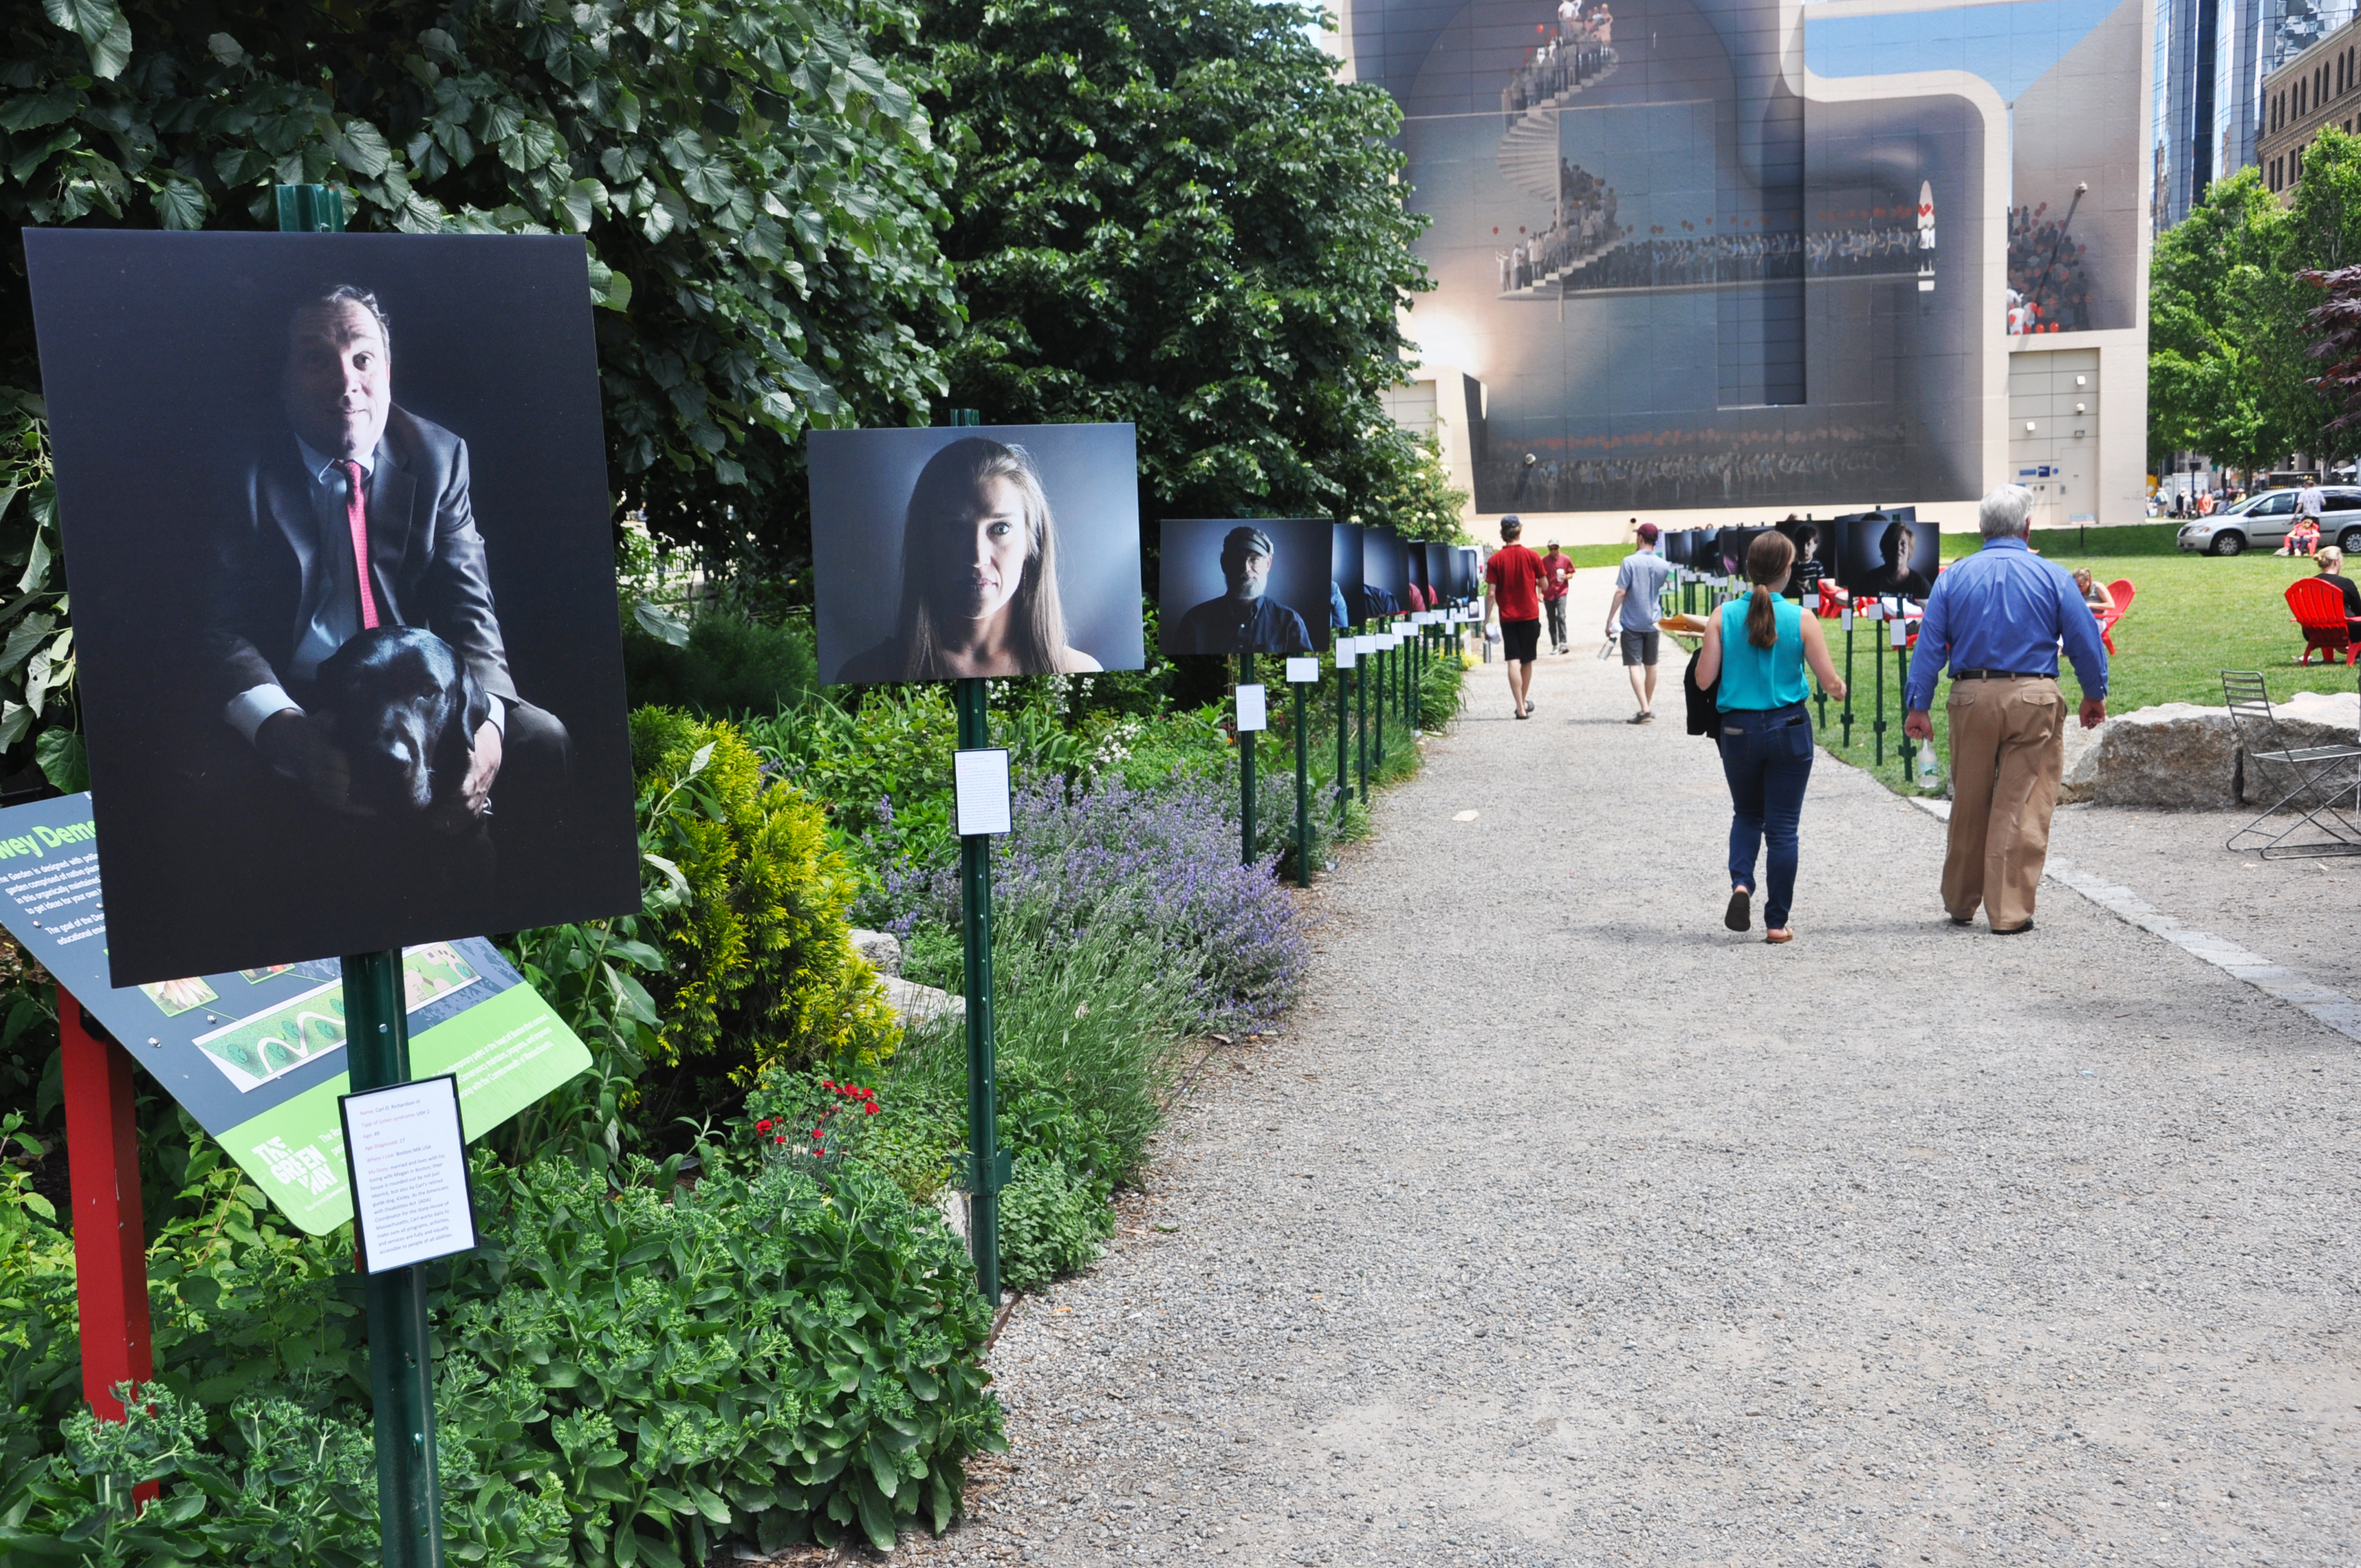 Usher Syndrome Society Summer Solstice Exhibit